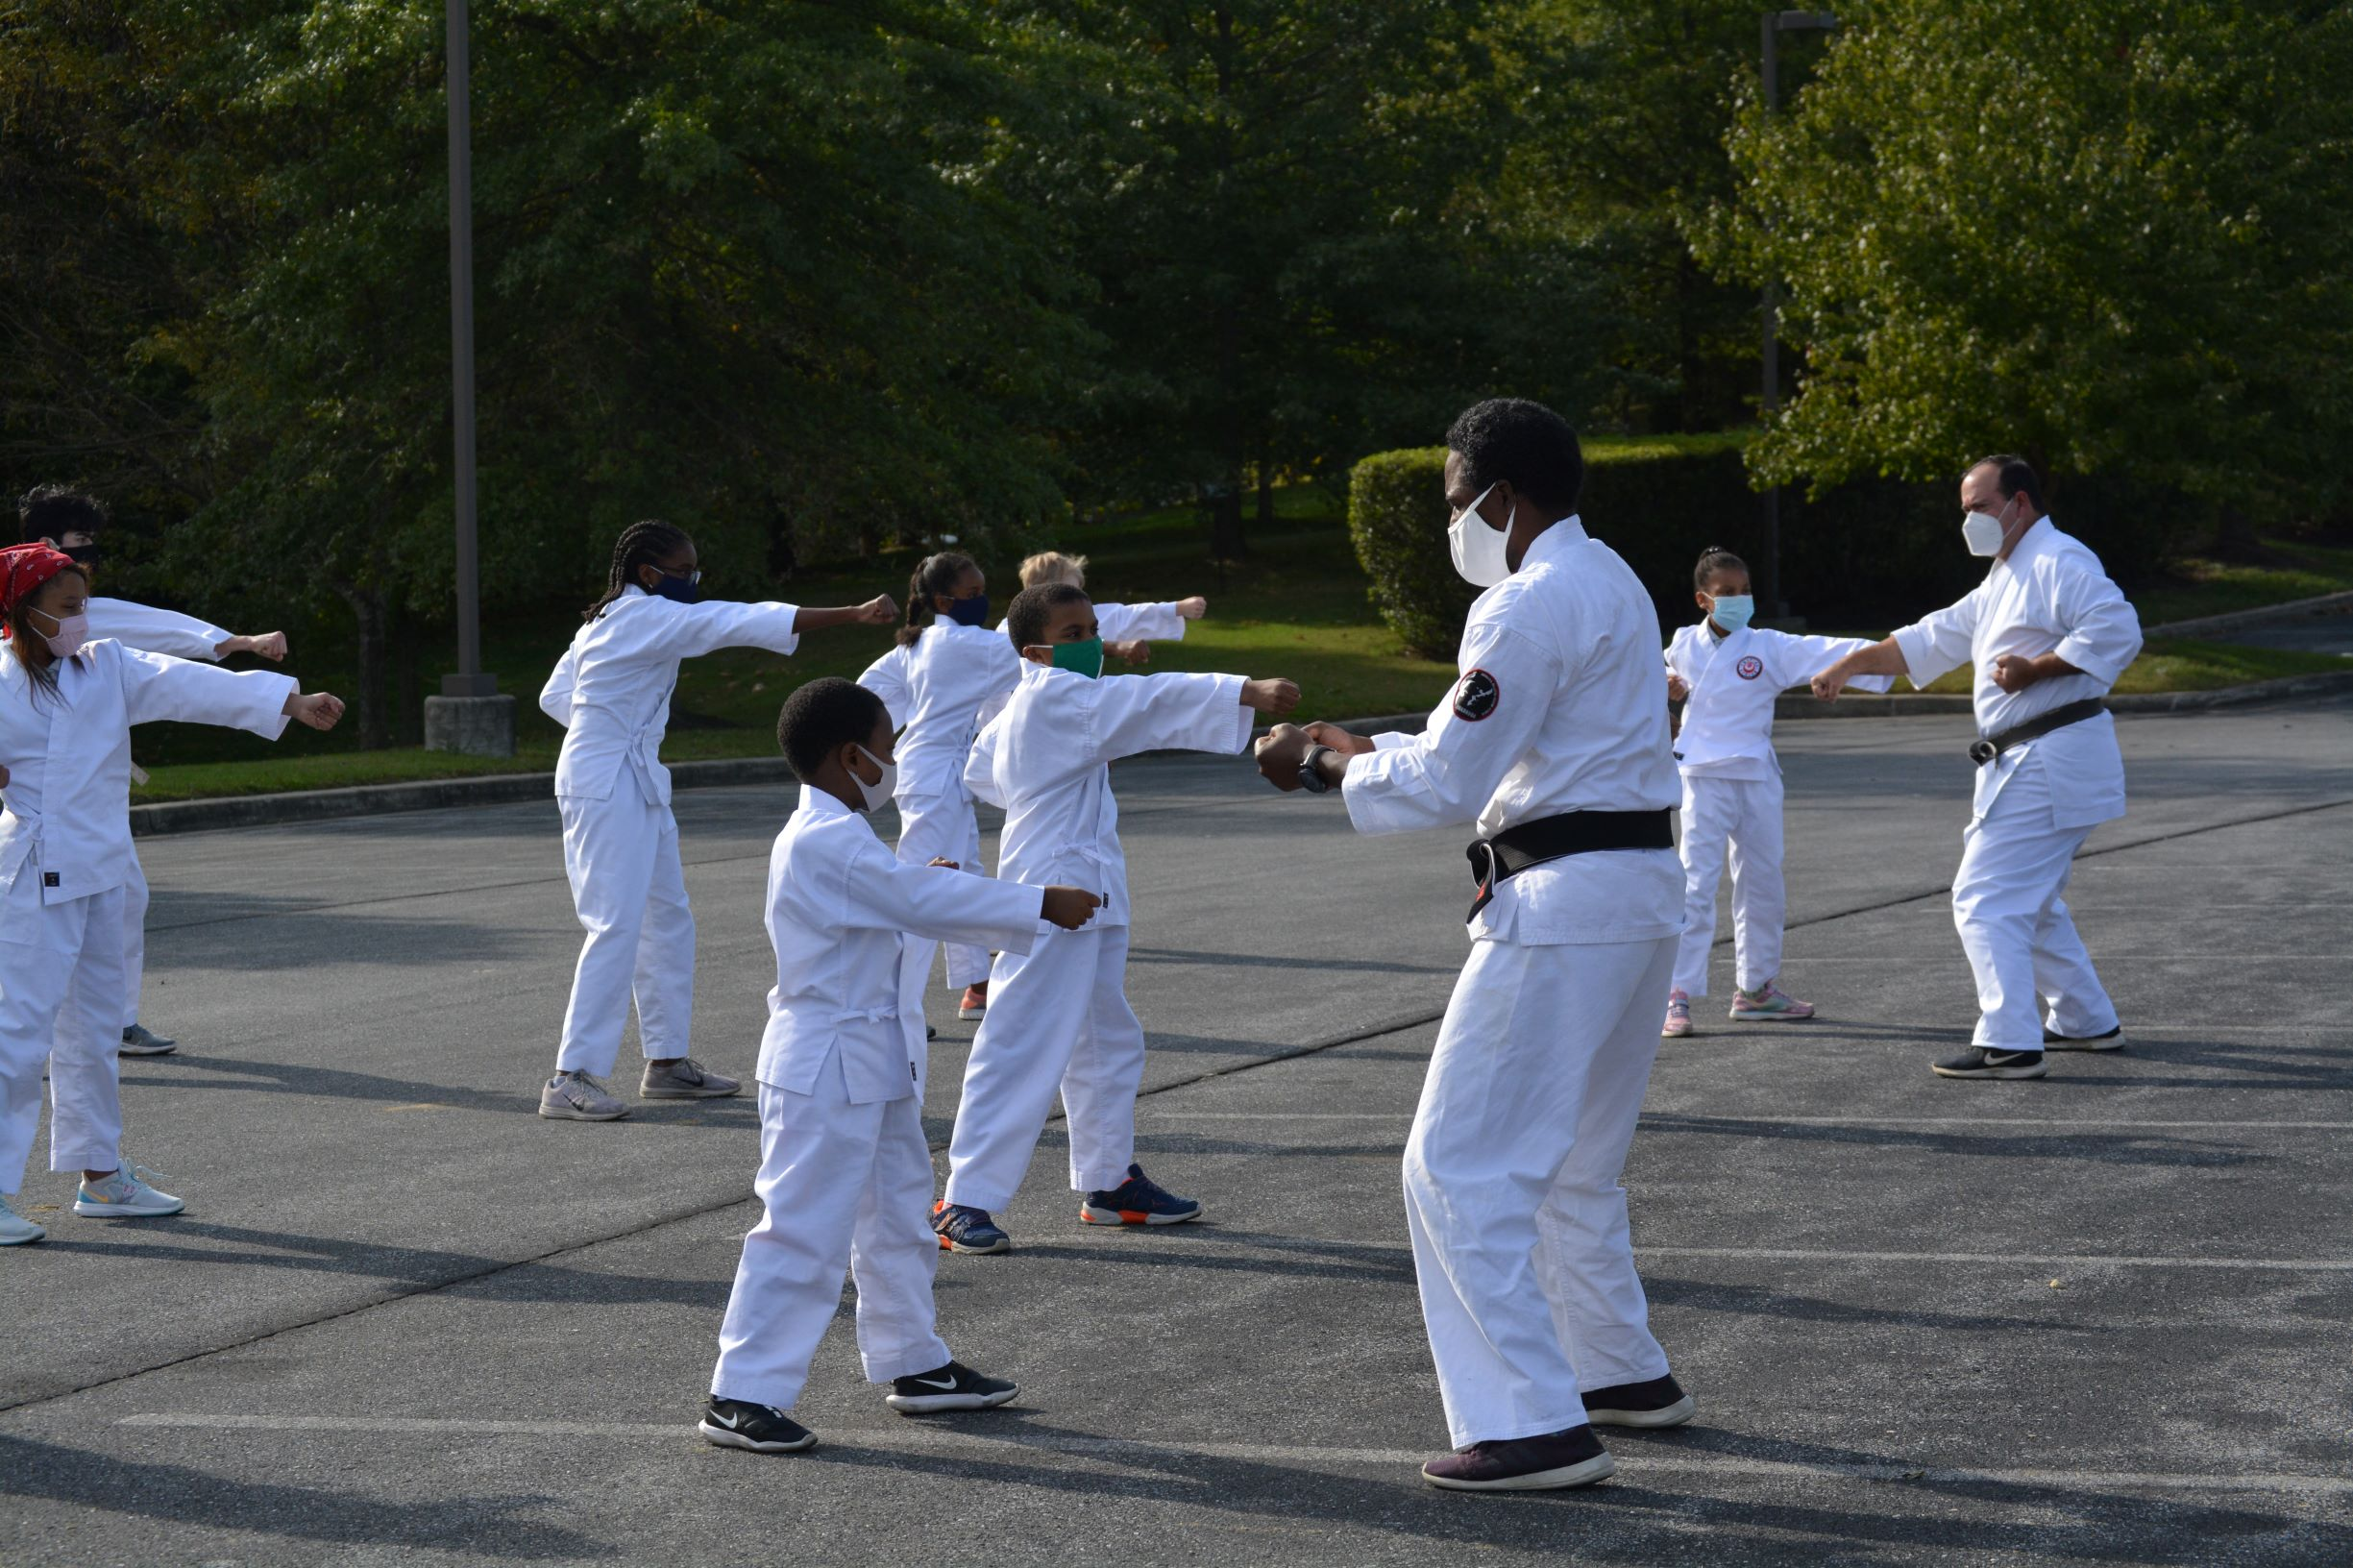 Karate - mid level punch